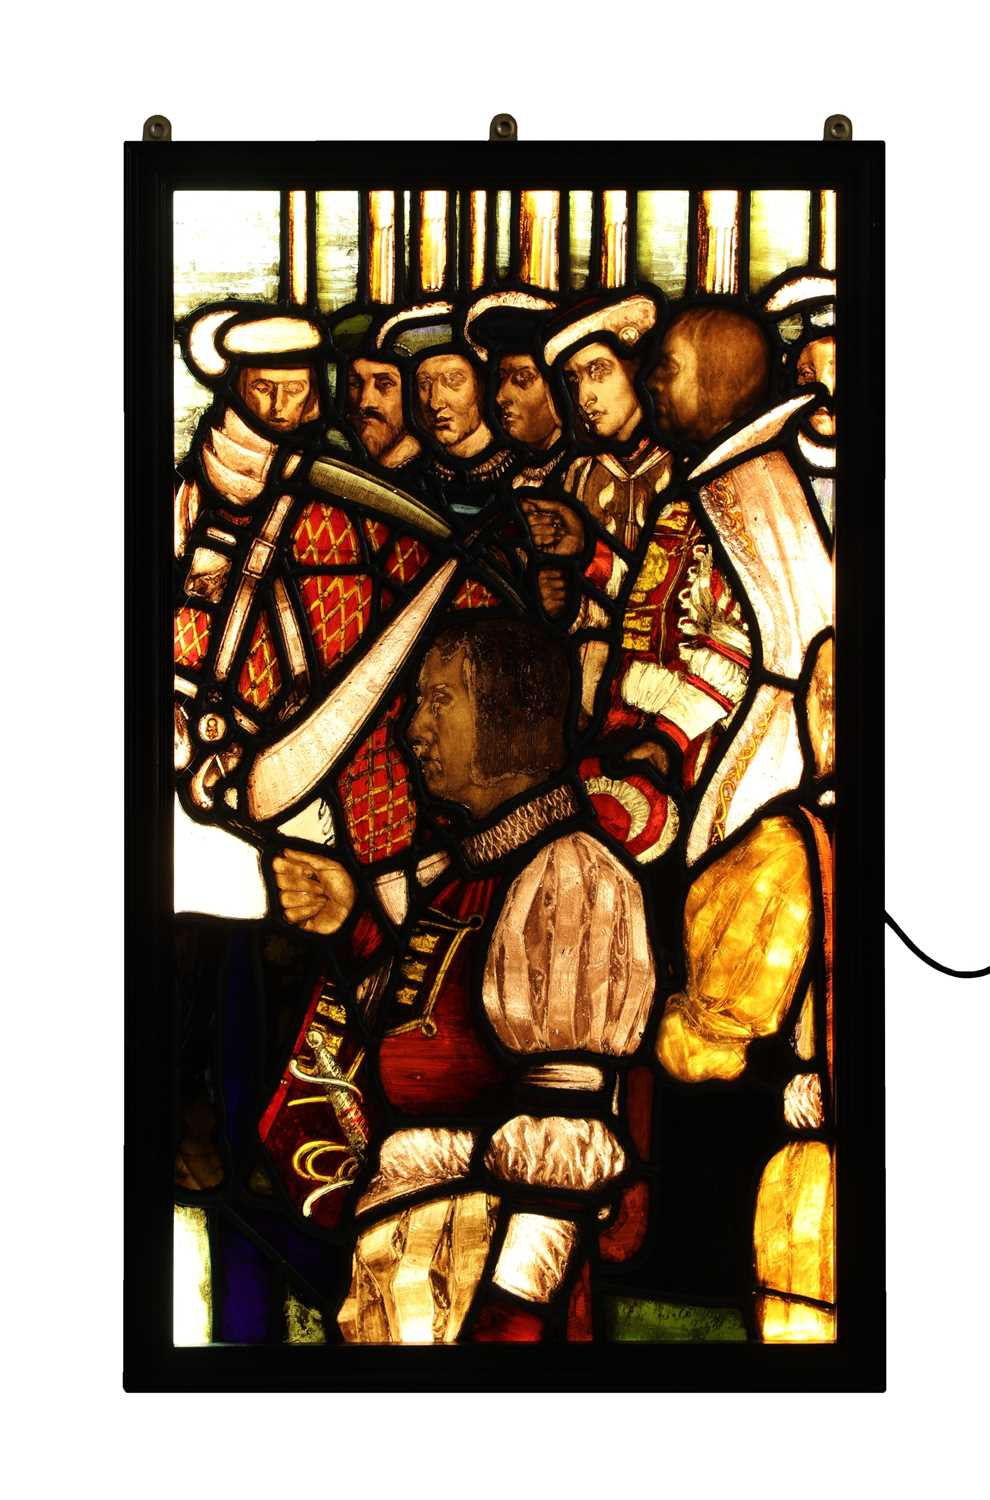 Lot 2 - A large stained glass panel